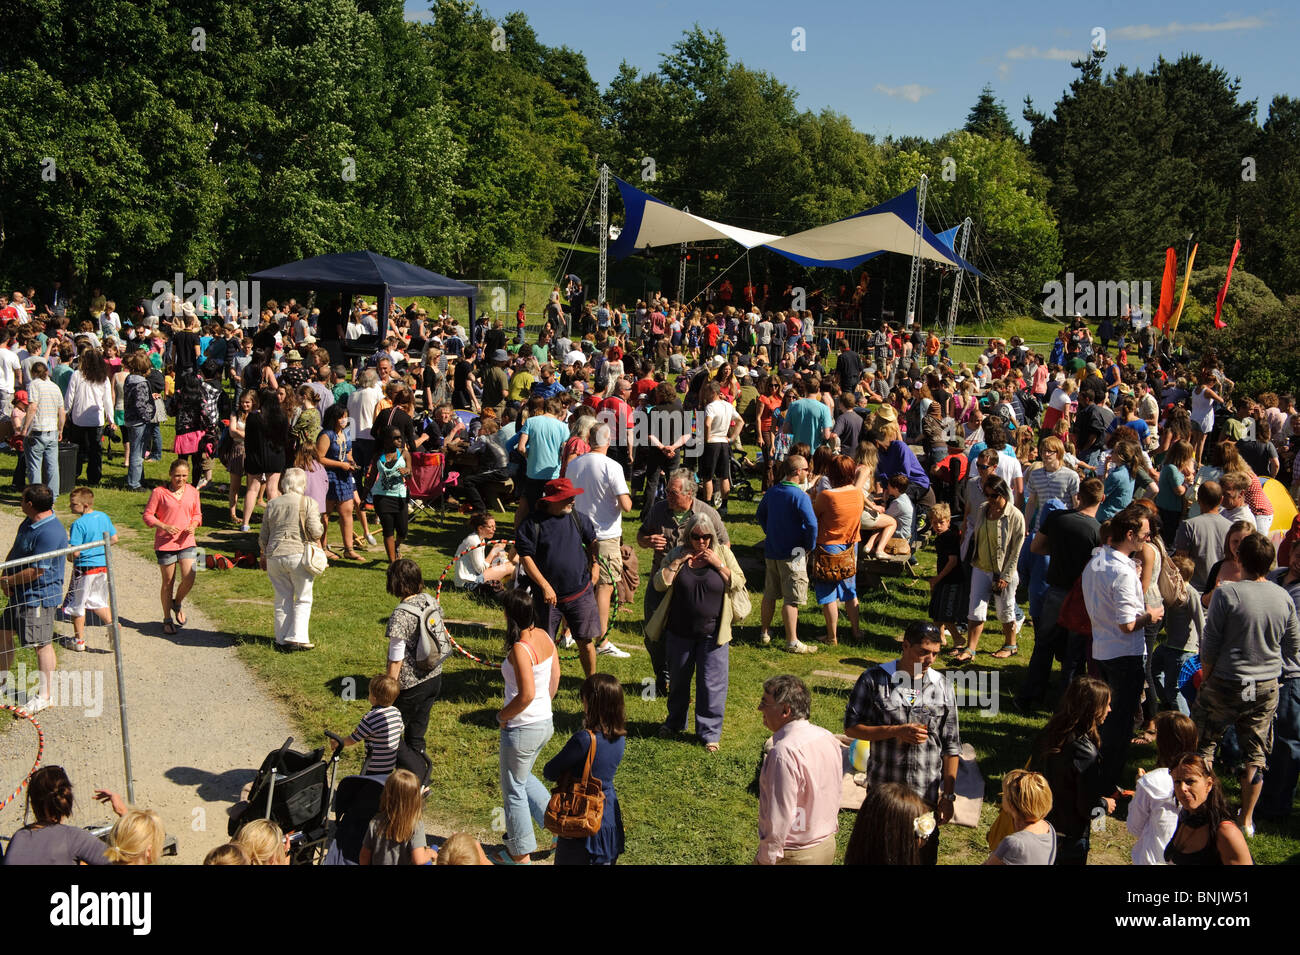 Aberystwyth Arts Centre 'Mid Mad - Midsummer Madness' open air free music festival, Wales UK - Stock Image